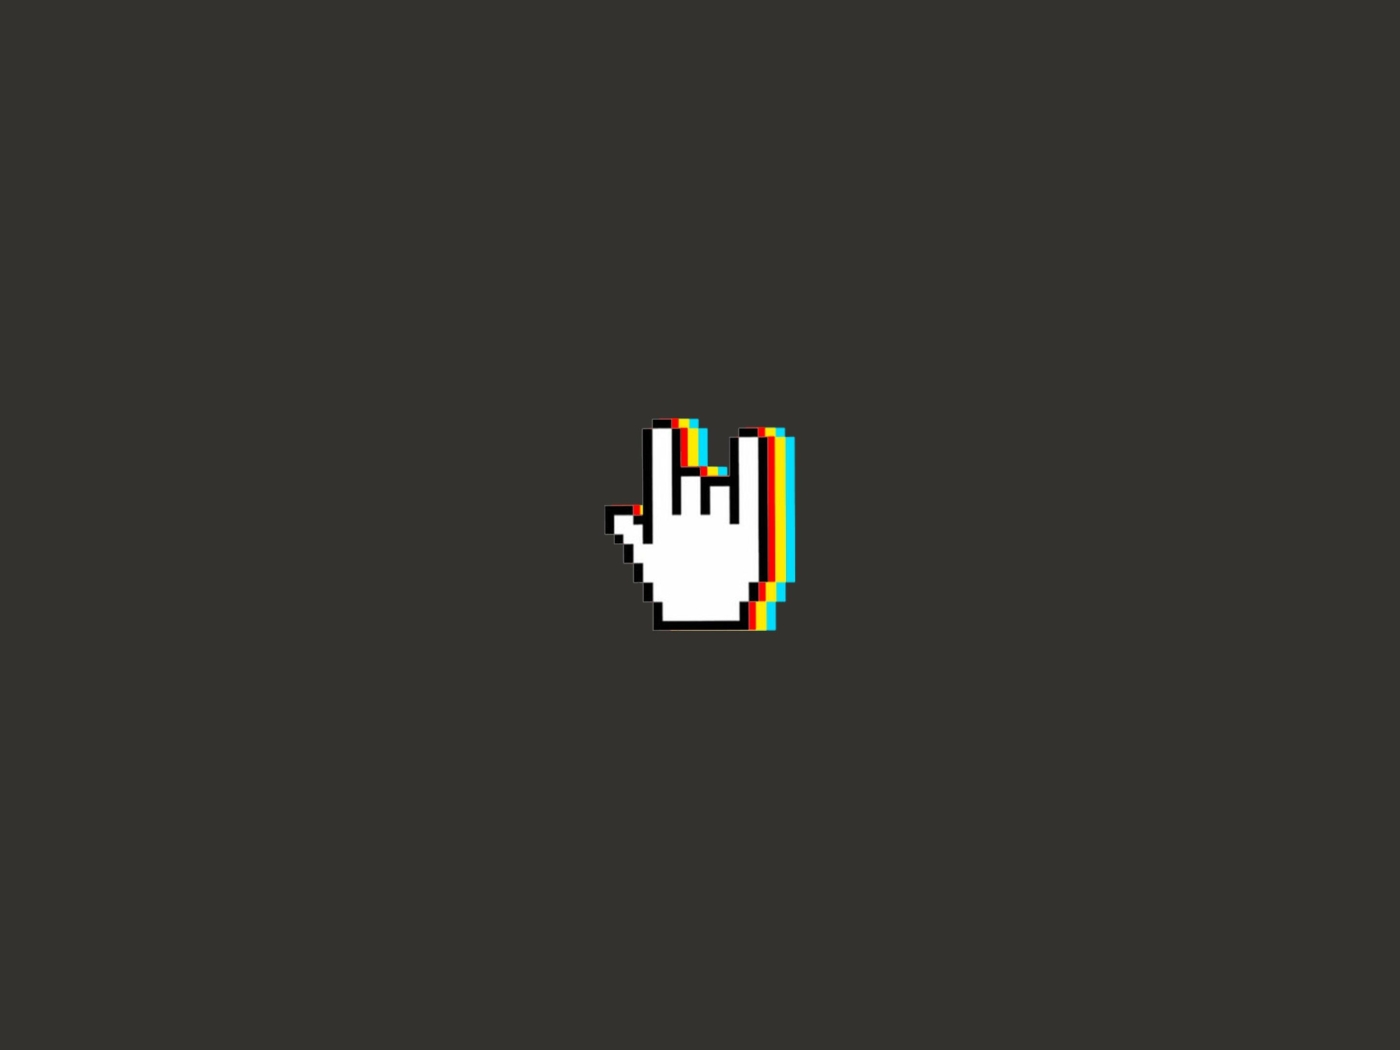 Rock And Roll Hand Gesture Minimal Hd 4k Wallpaper